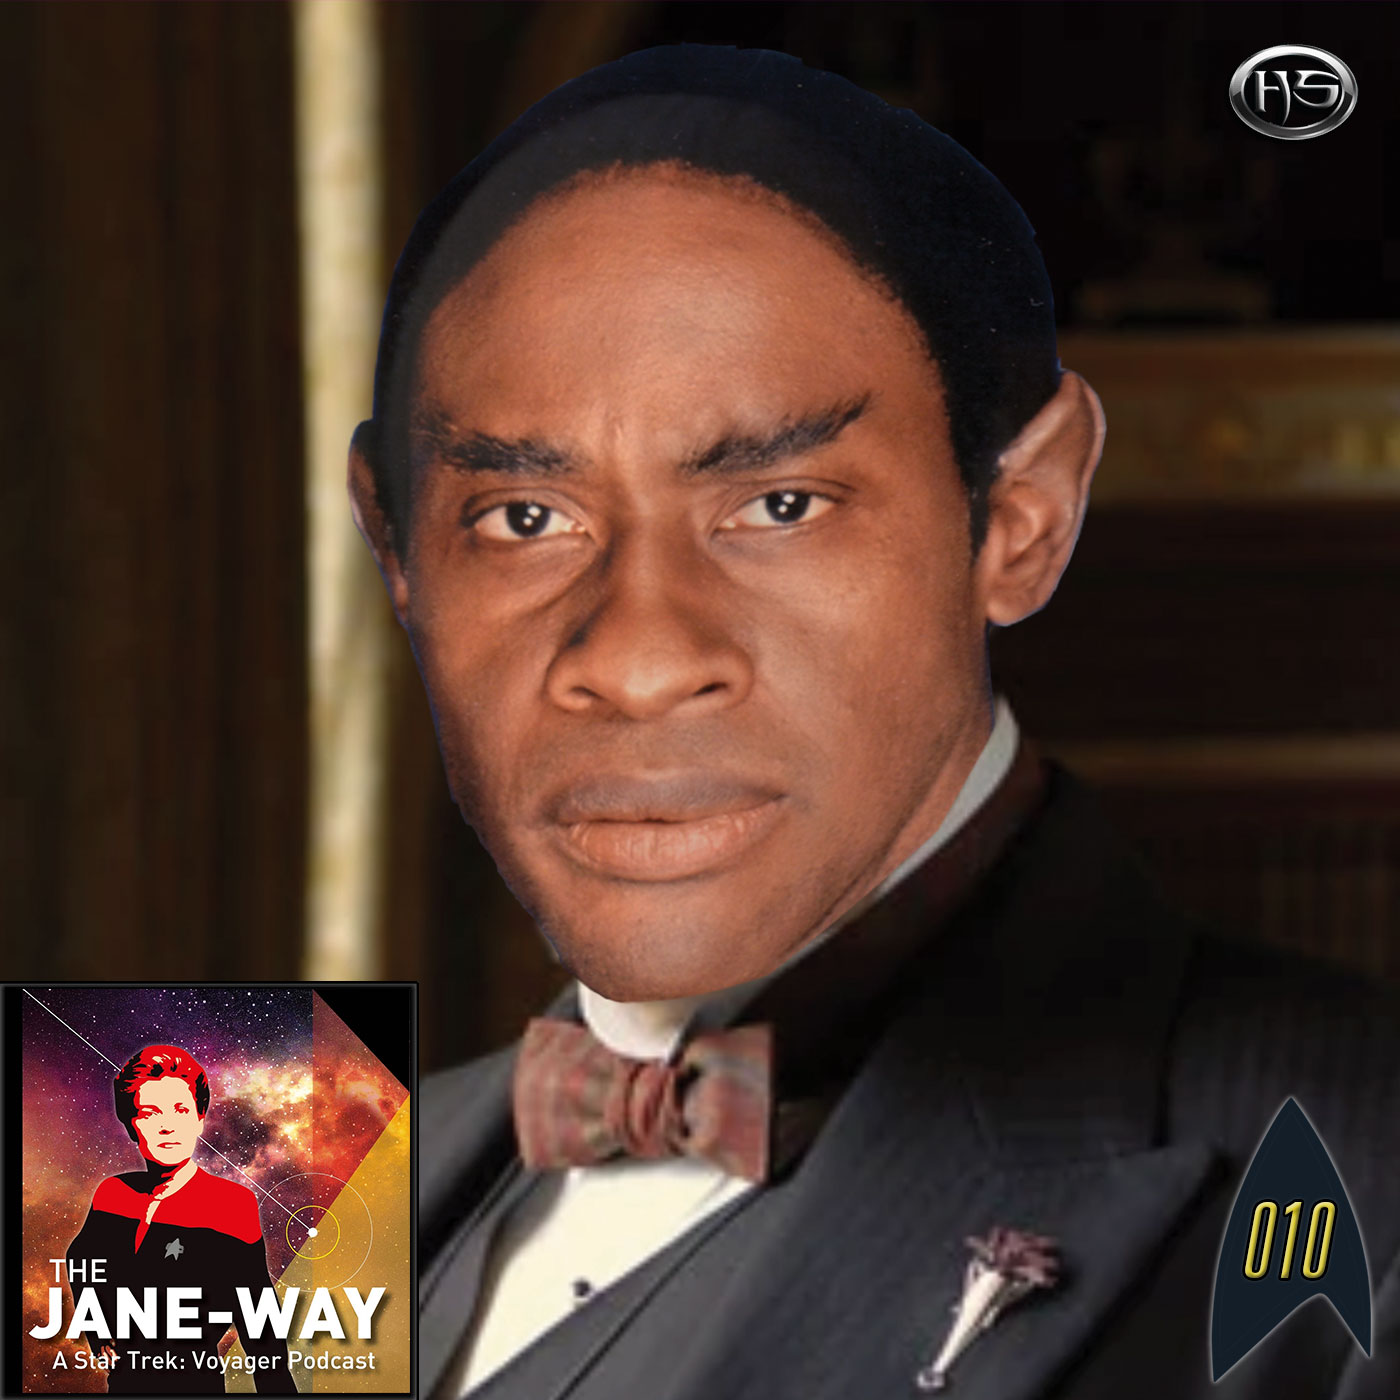 The Jane-Way Episode 10